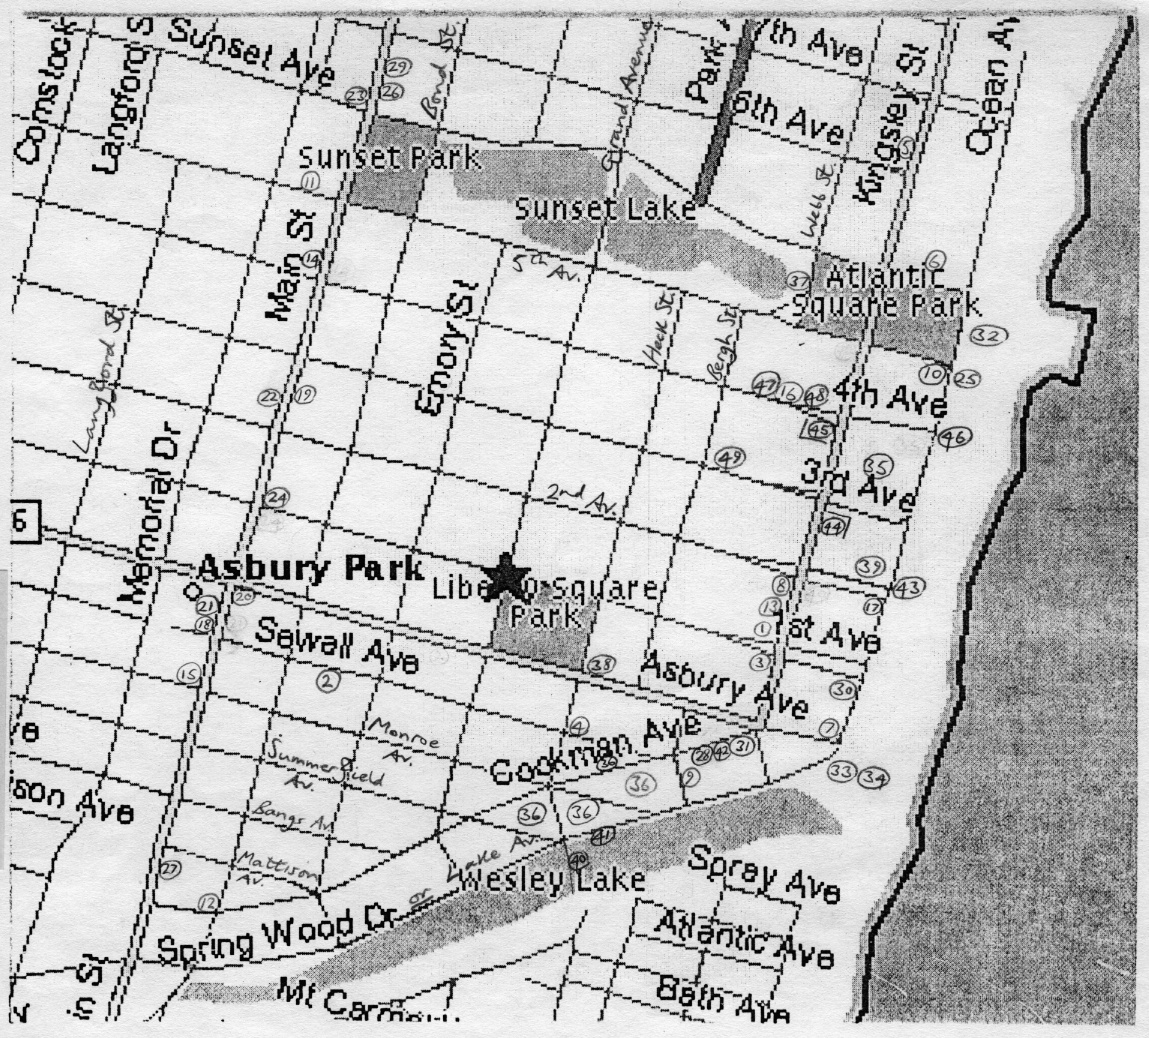 Map of Asbury Park, as it was captured in Rohan Quine's novel 'The Imagination Thief' (literary fiction, magical realism, horror)